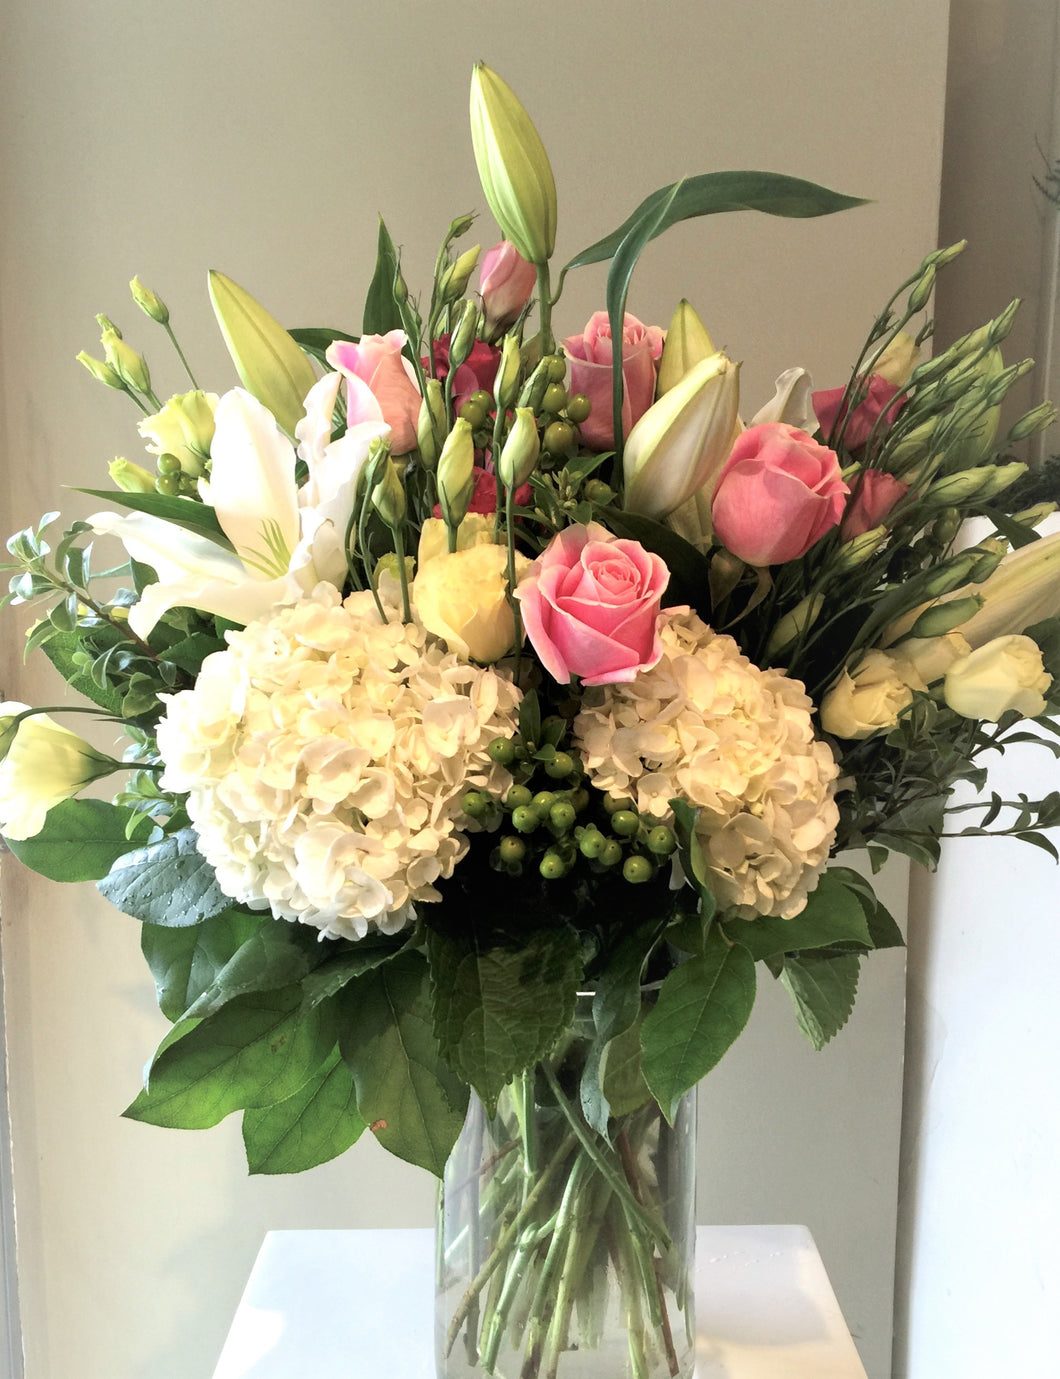 FNV77 - Classic White and Pink Vase Arrangement - Flowerplustoronto